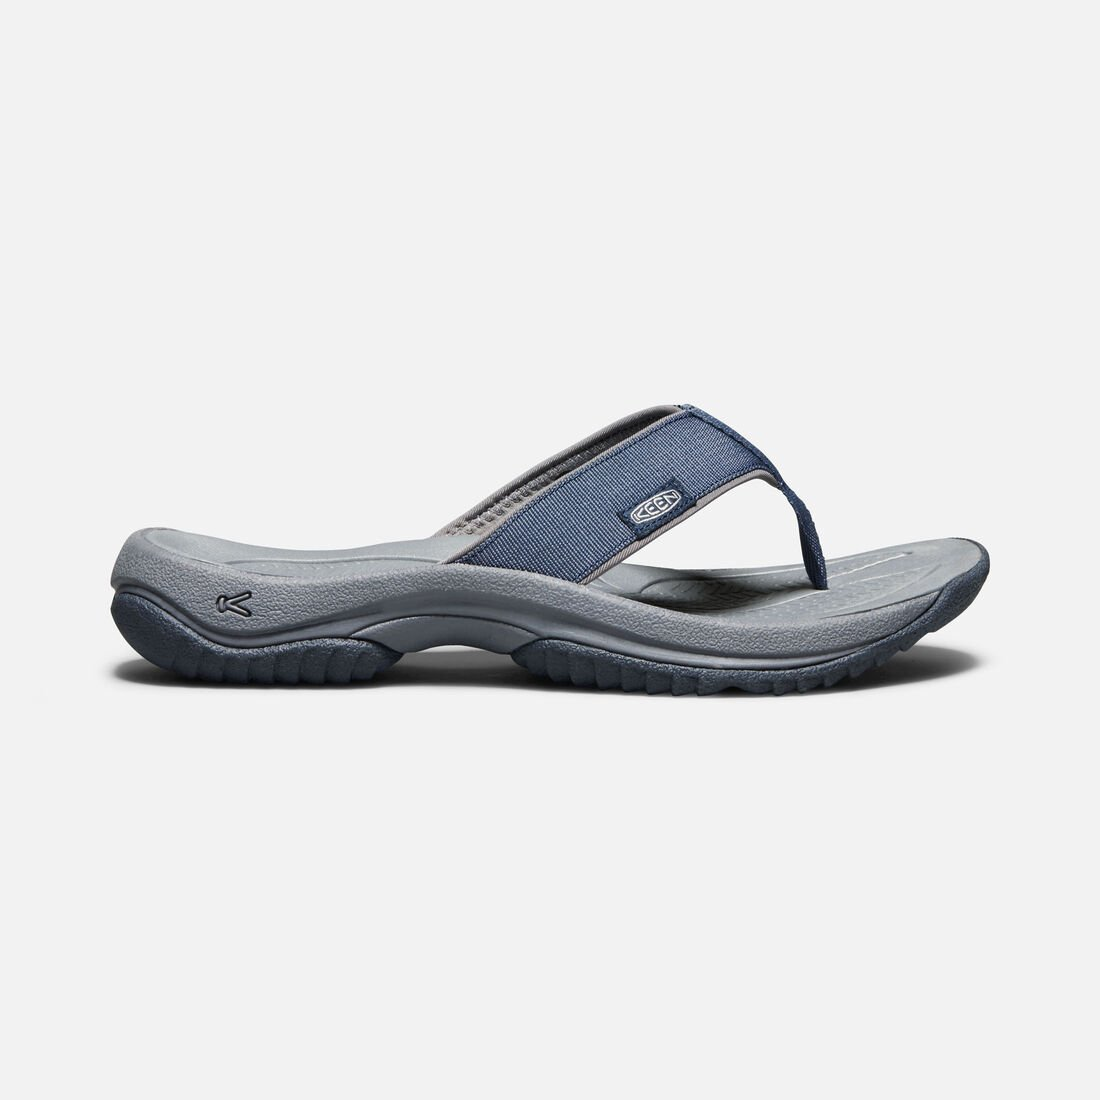 Men's KONA FLIP II in DRESS BLUES/STEEL GREY - large view.